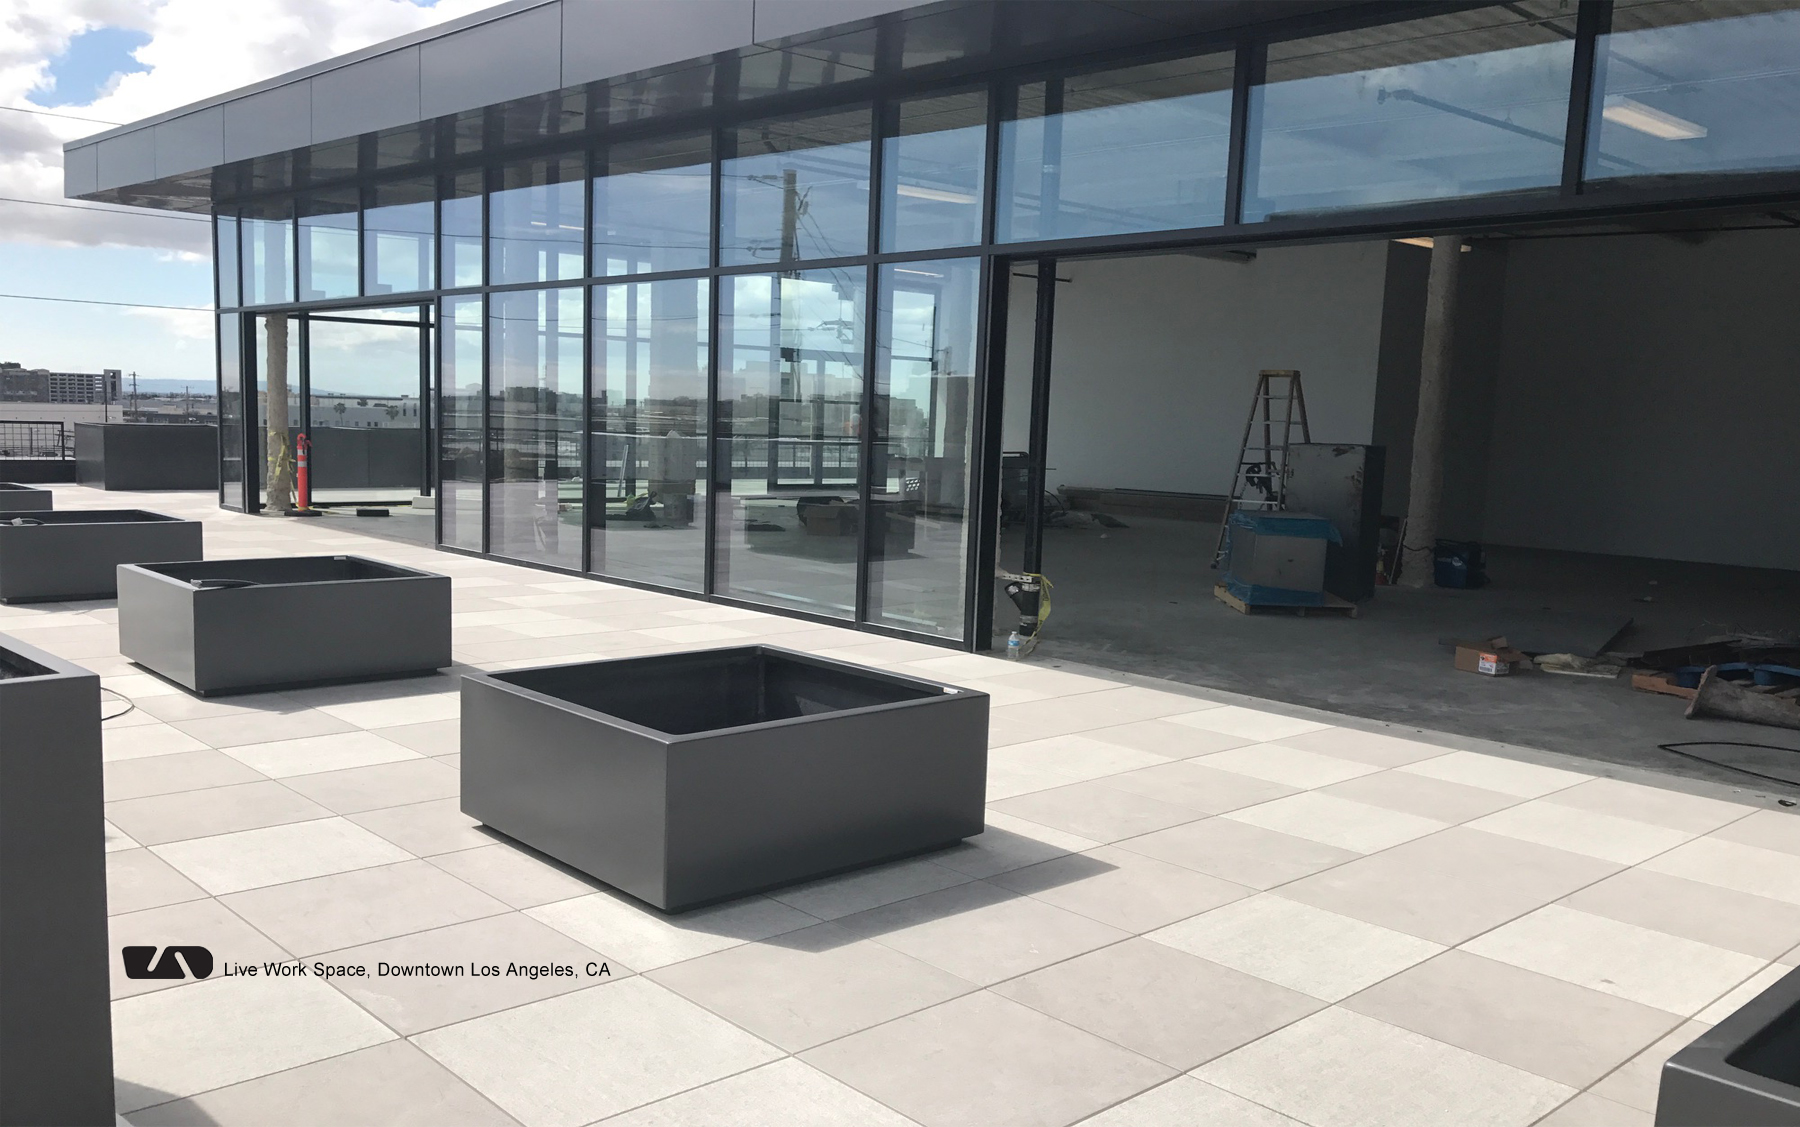 "<h1 class=""text-white"">Pedestal and pavers with lightweight planters make a roof deck functional</h1>"